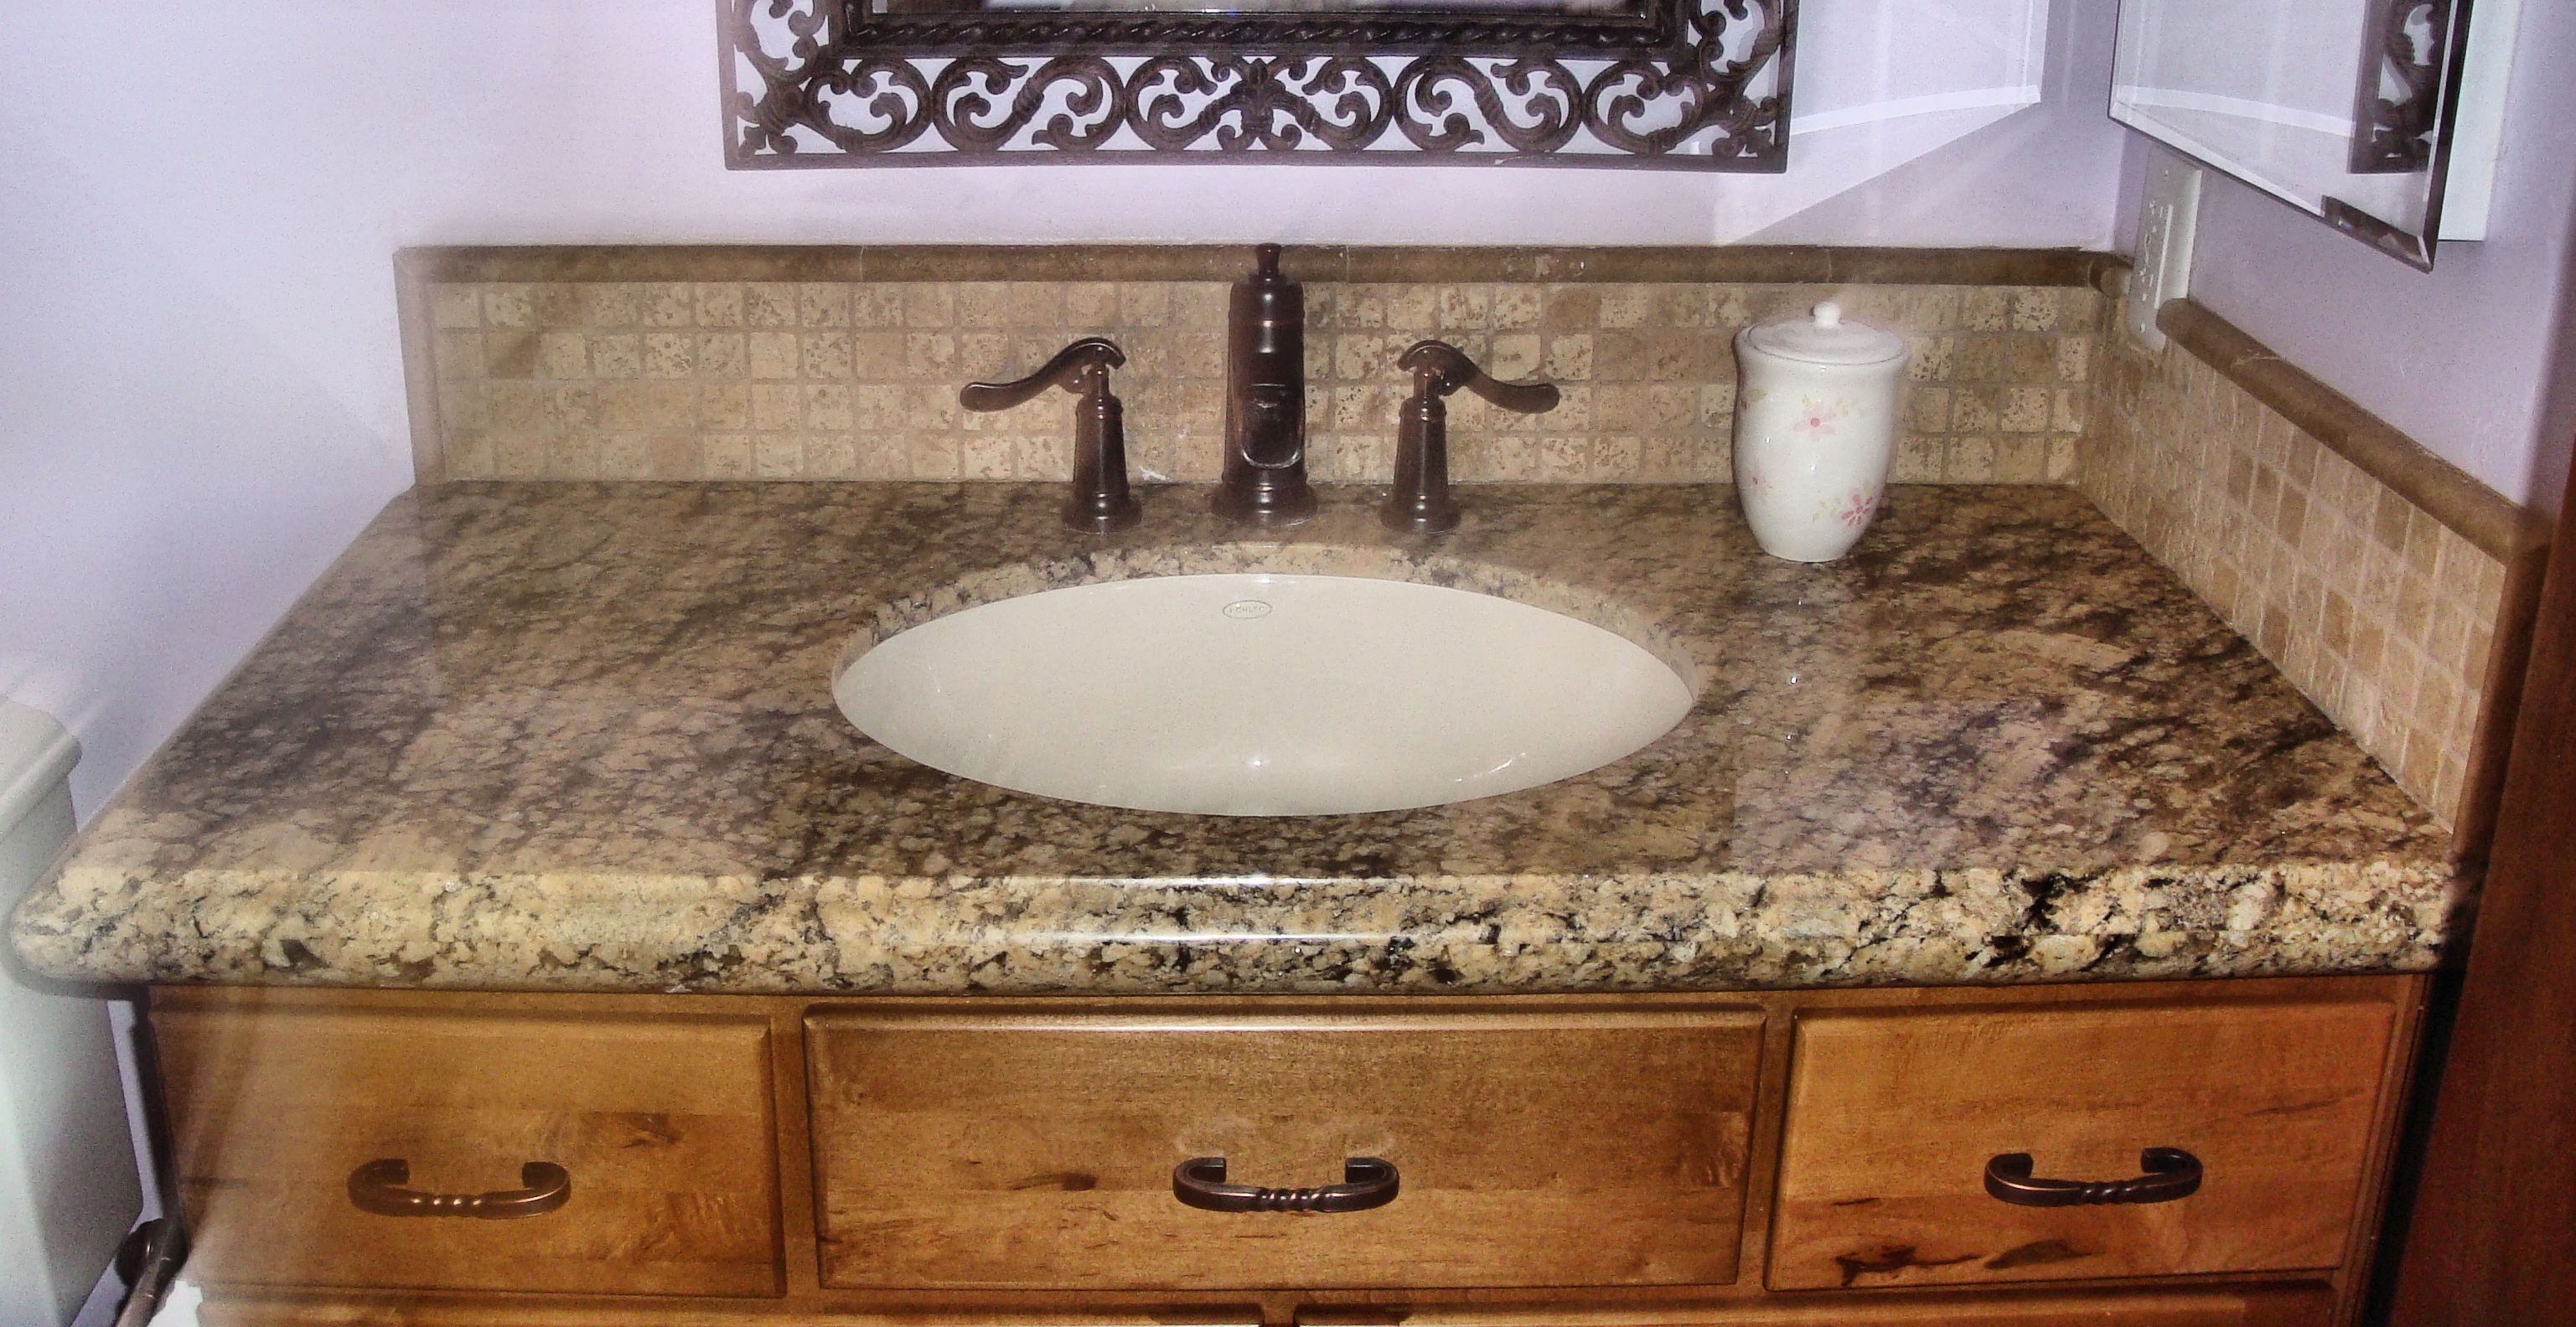 Small Bathroom Vanity With Granite Top : Granite bathroom countertops beige